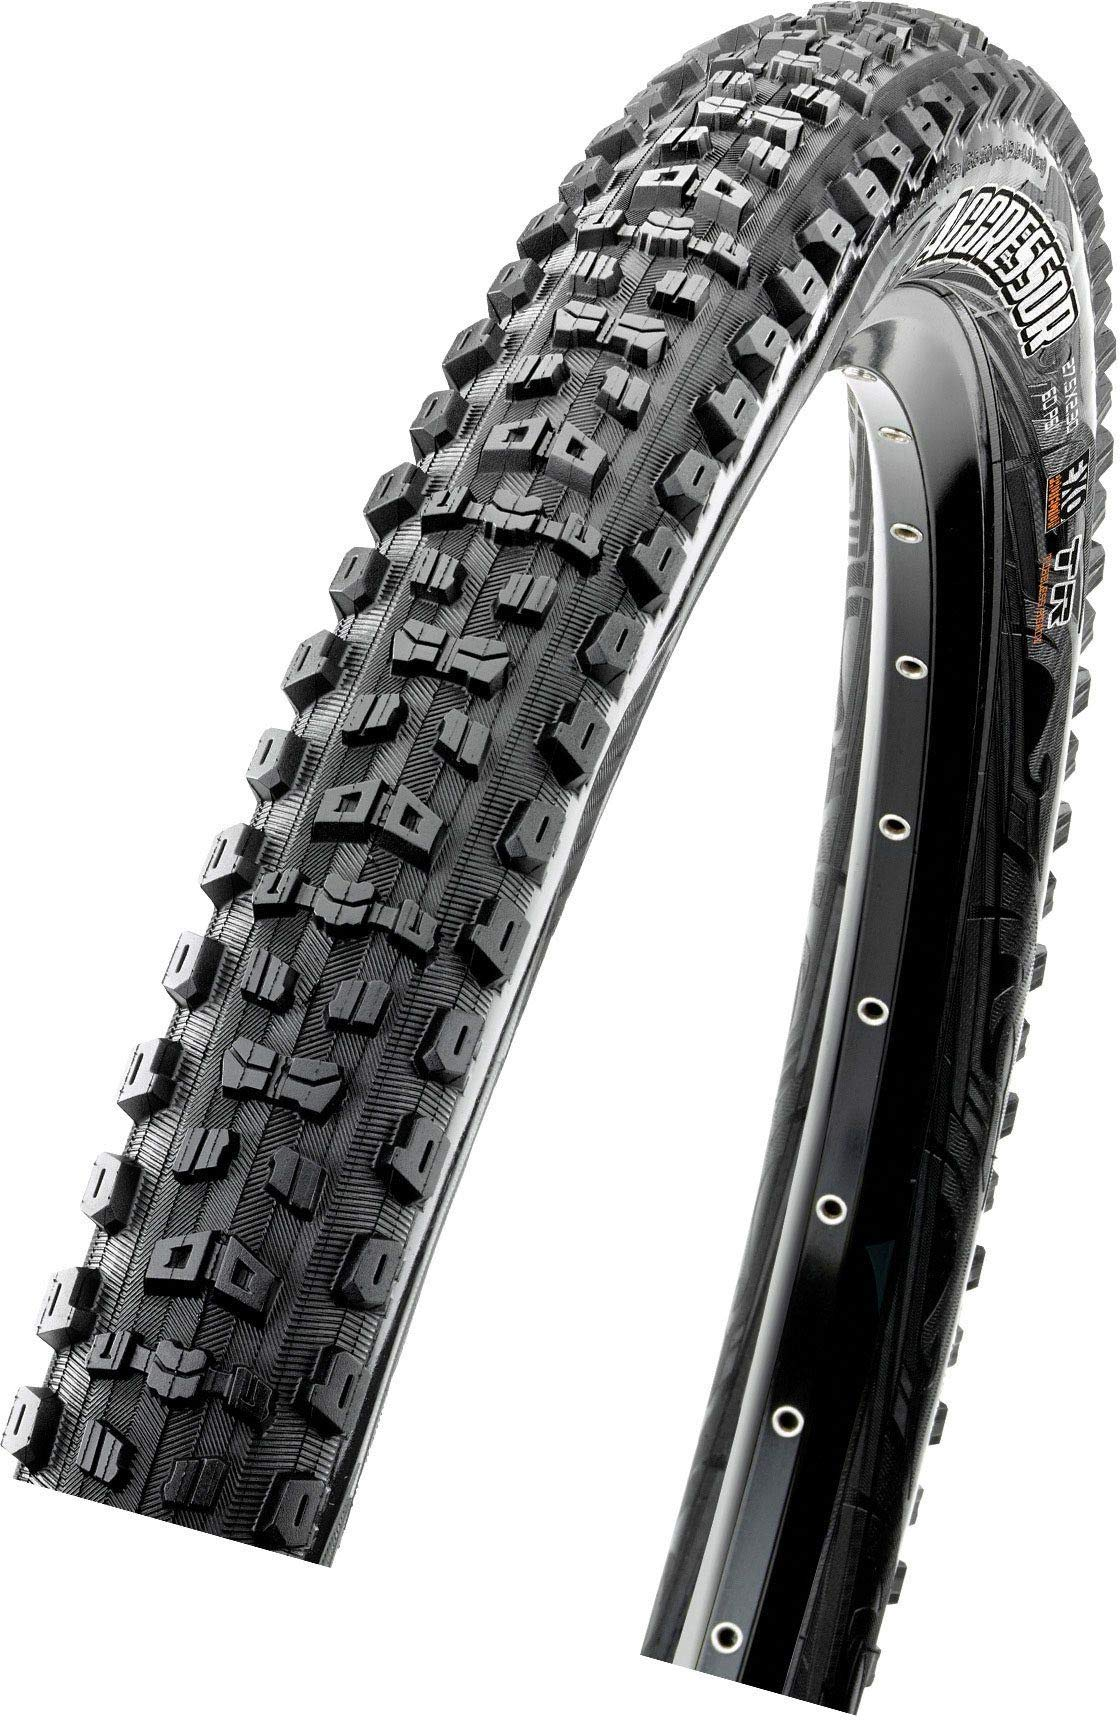 Maxxis Aggressor Wide Trail EXO/TR Tire - 27.5in Black, Dual Compound, 27.5x2.5 by Maxxis